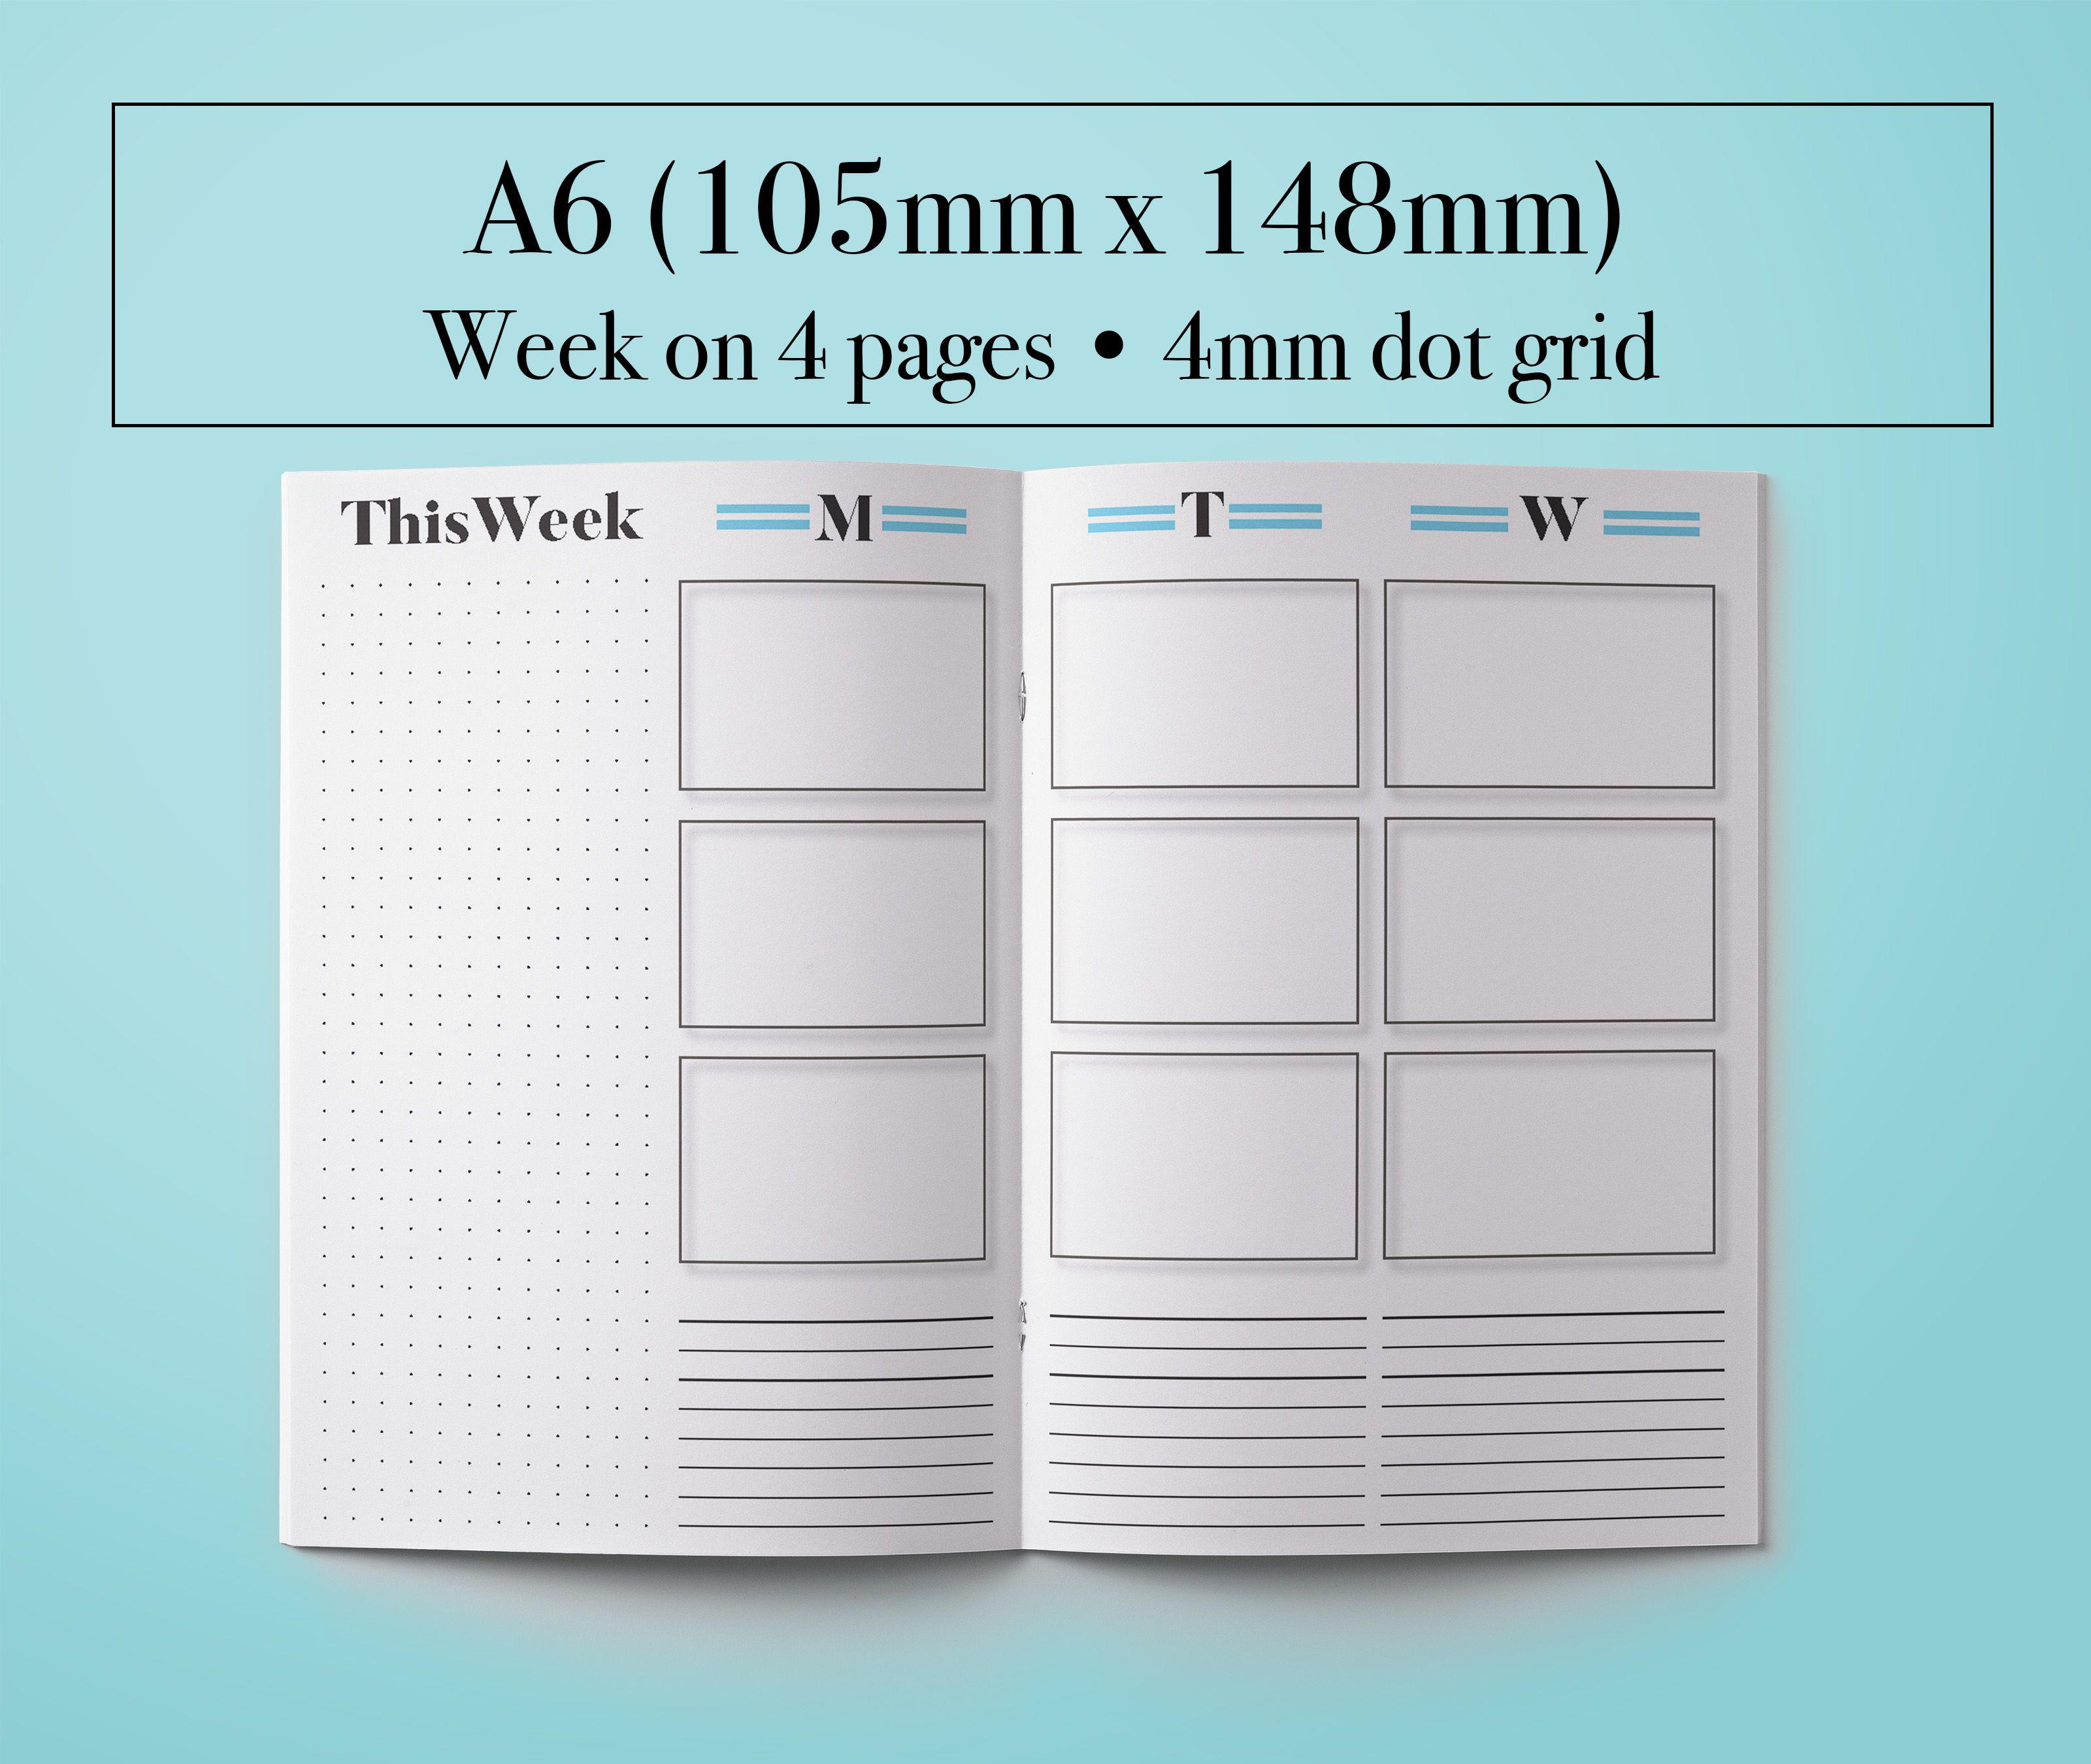 graphic relating to Diy Planner Pages referred to as Do-it-yourself Planner! A6 Weekly add upon 4 Internet pages. Monday get started towards